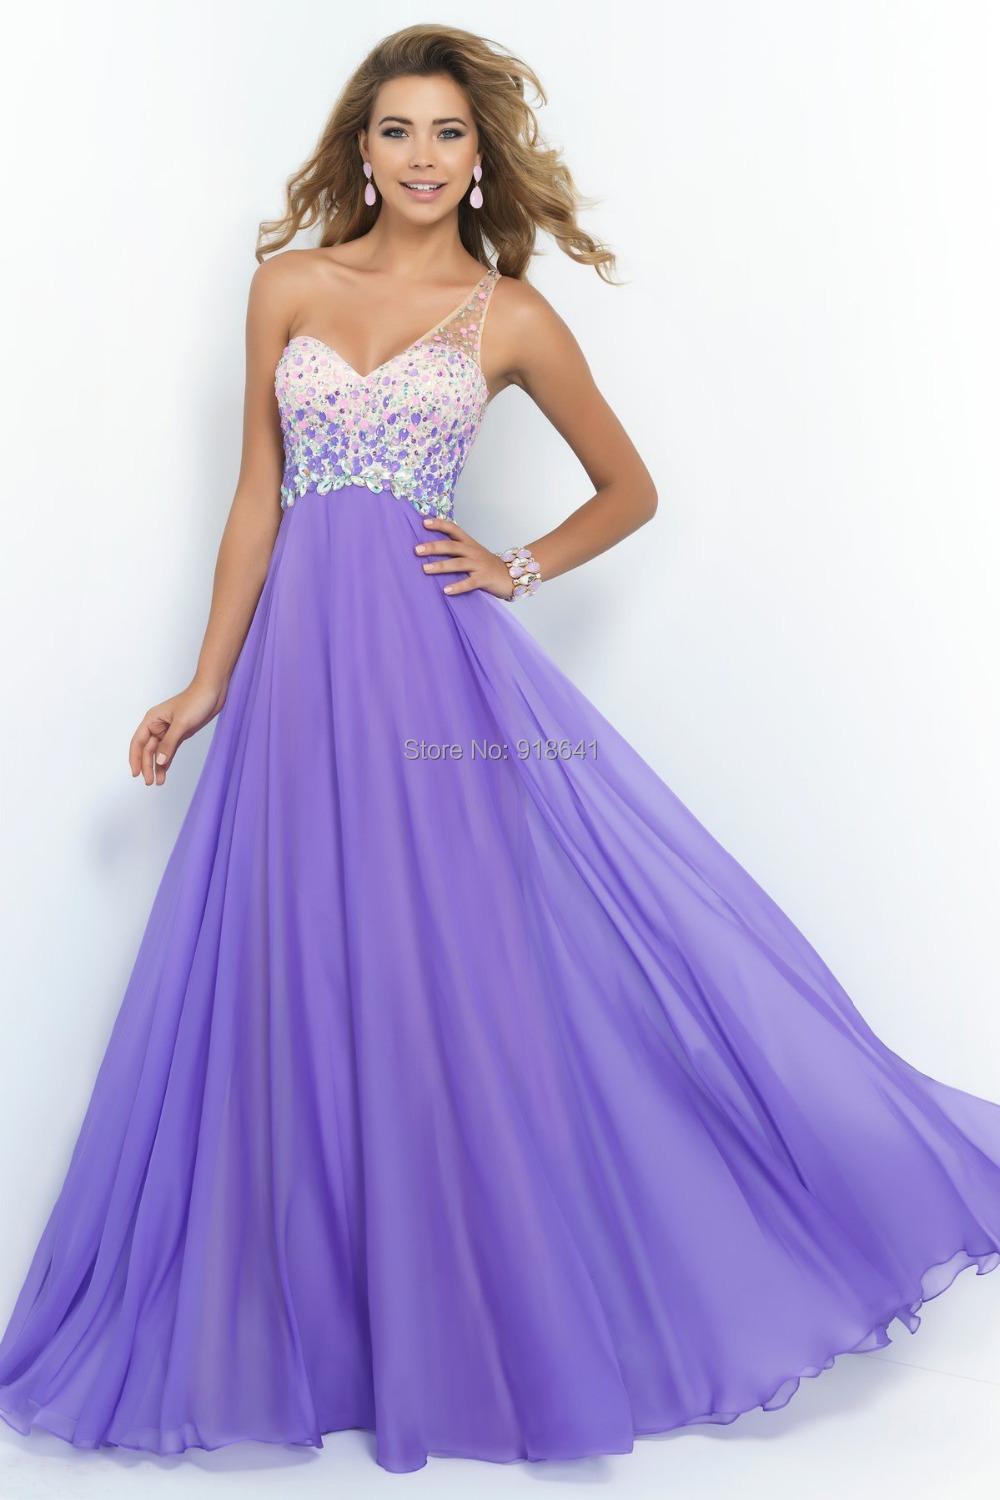 Lavender Chiffon Prom Dress 2015 One Shoulder line Ruched Beaded Sequins Backless Gowns Vestidos de Festa Vestido Longo - Online Store AndyBridal store